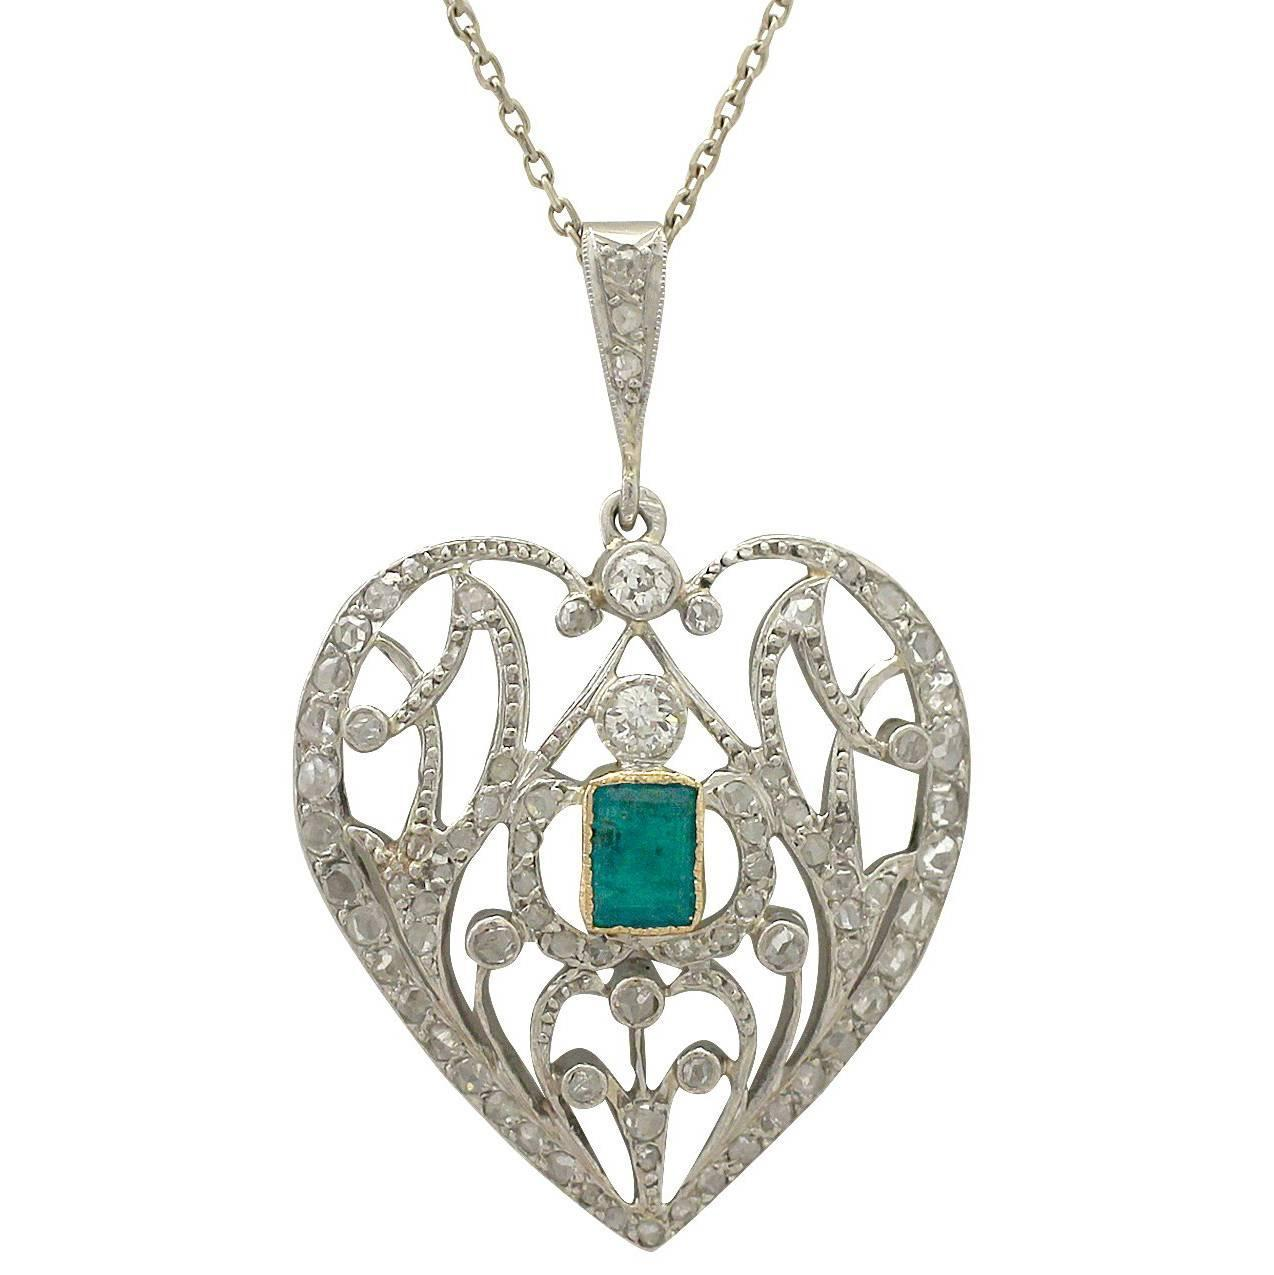 Antique 1890s 033 ct emerald and 035 ct diamond 9 k white gold antique 1890s 033 ct emerald and 035 ct diamond 9 k white gold heart pendant for sale at 1stdibs aloadofball Gallery